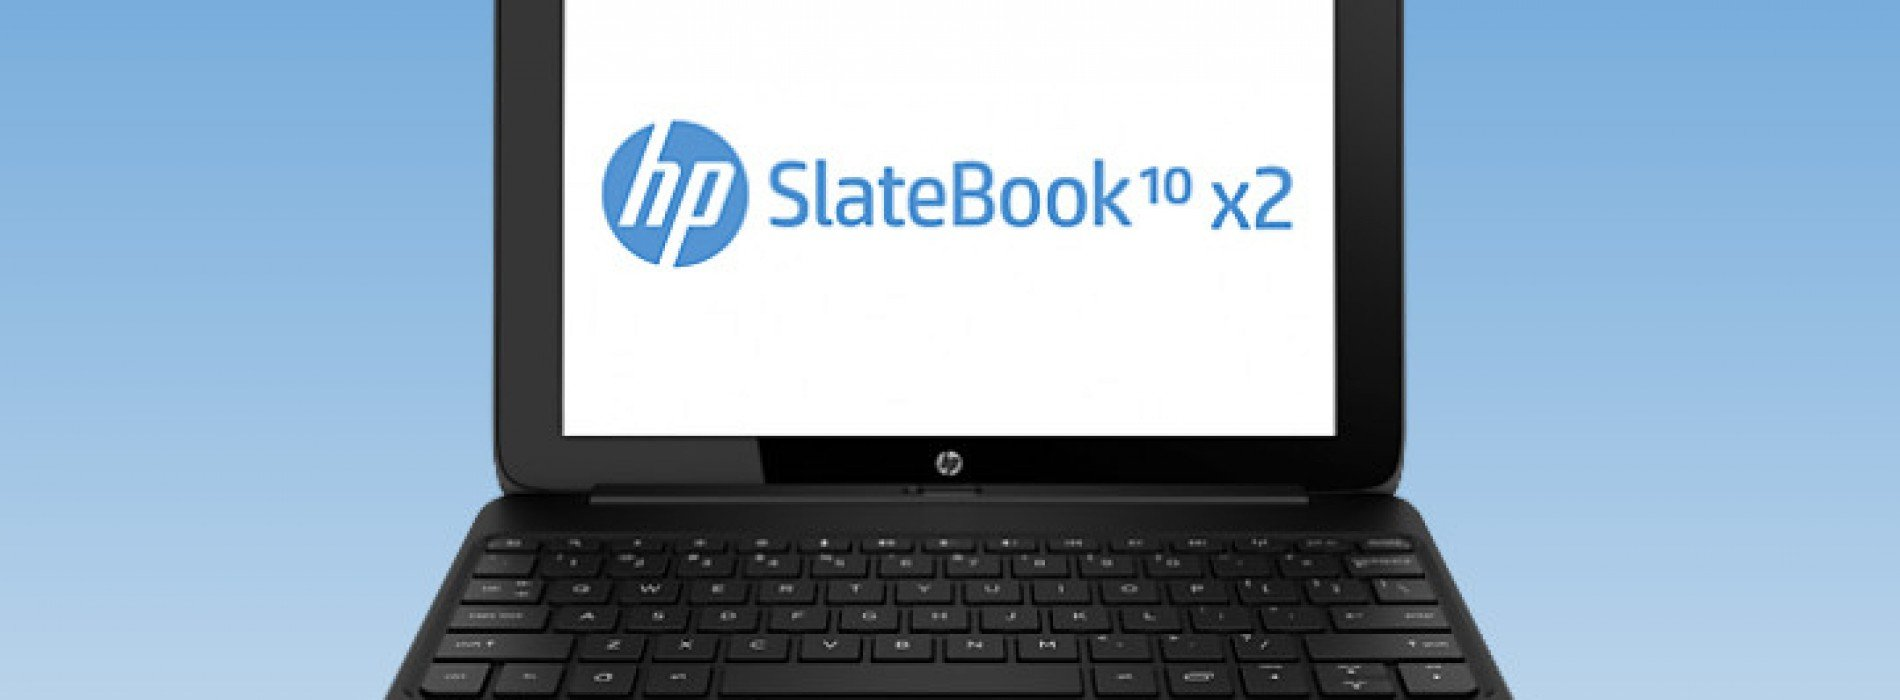 HP announces Tegra 4-powered SlateBook x2 for August